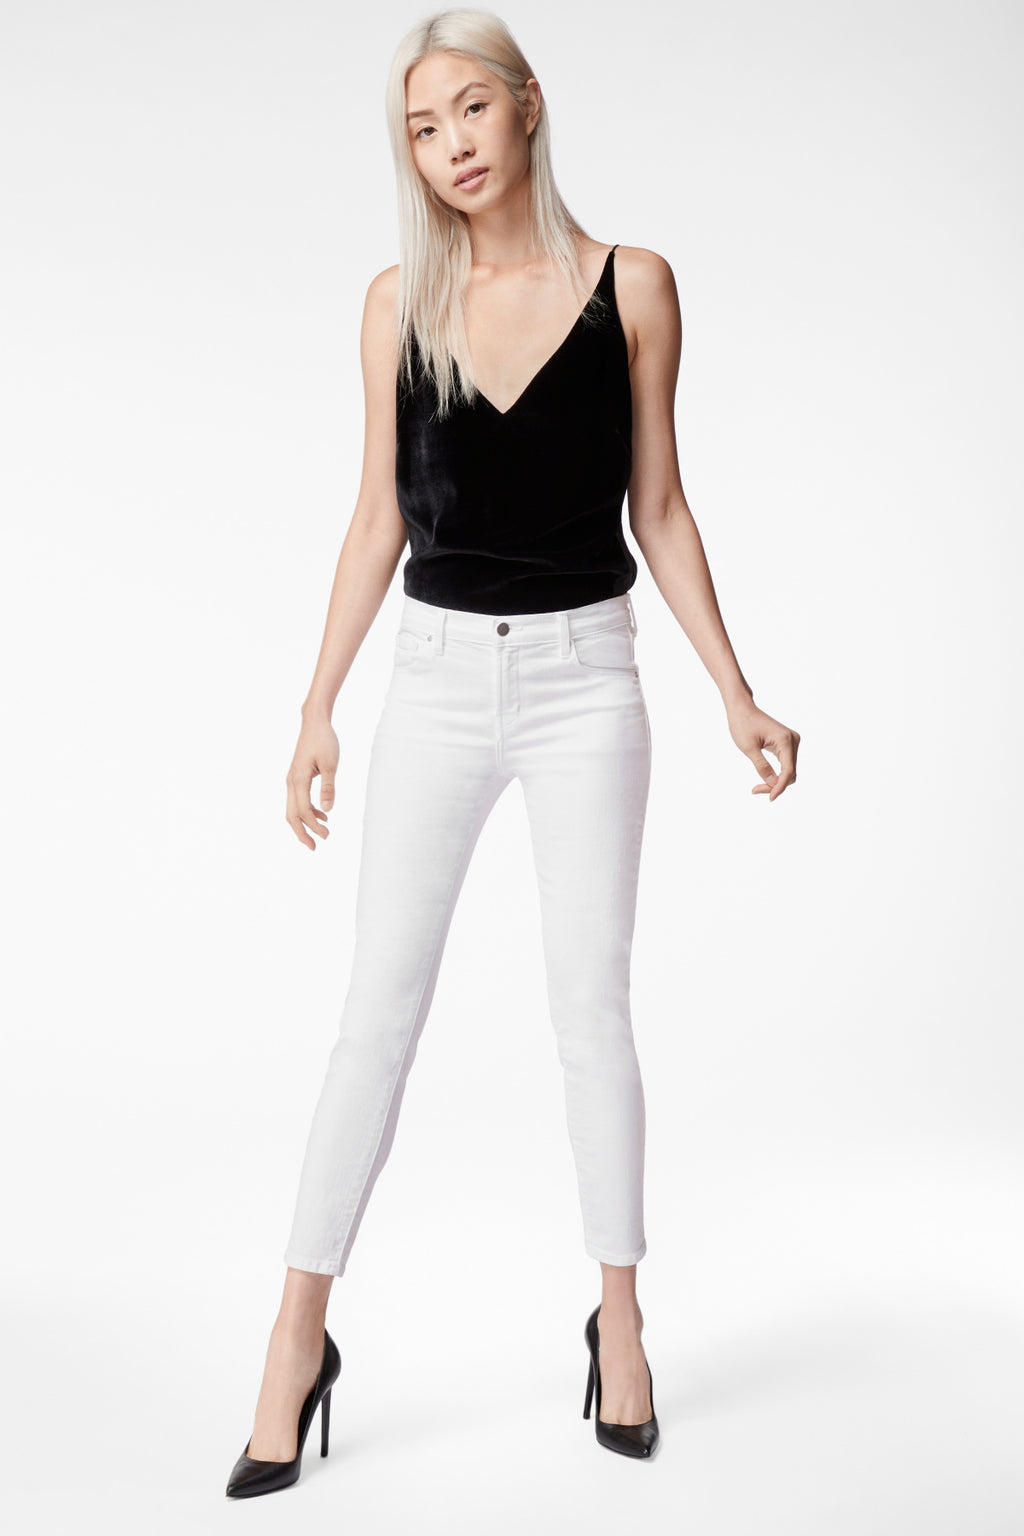 Buy 835 Mid Rise Cropped Skinny Pants from J BRAND at PAYA boutique